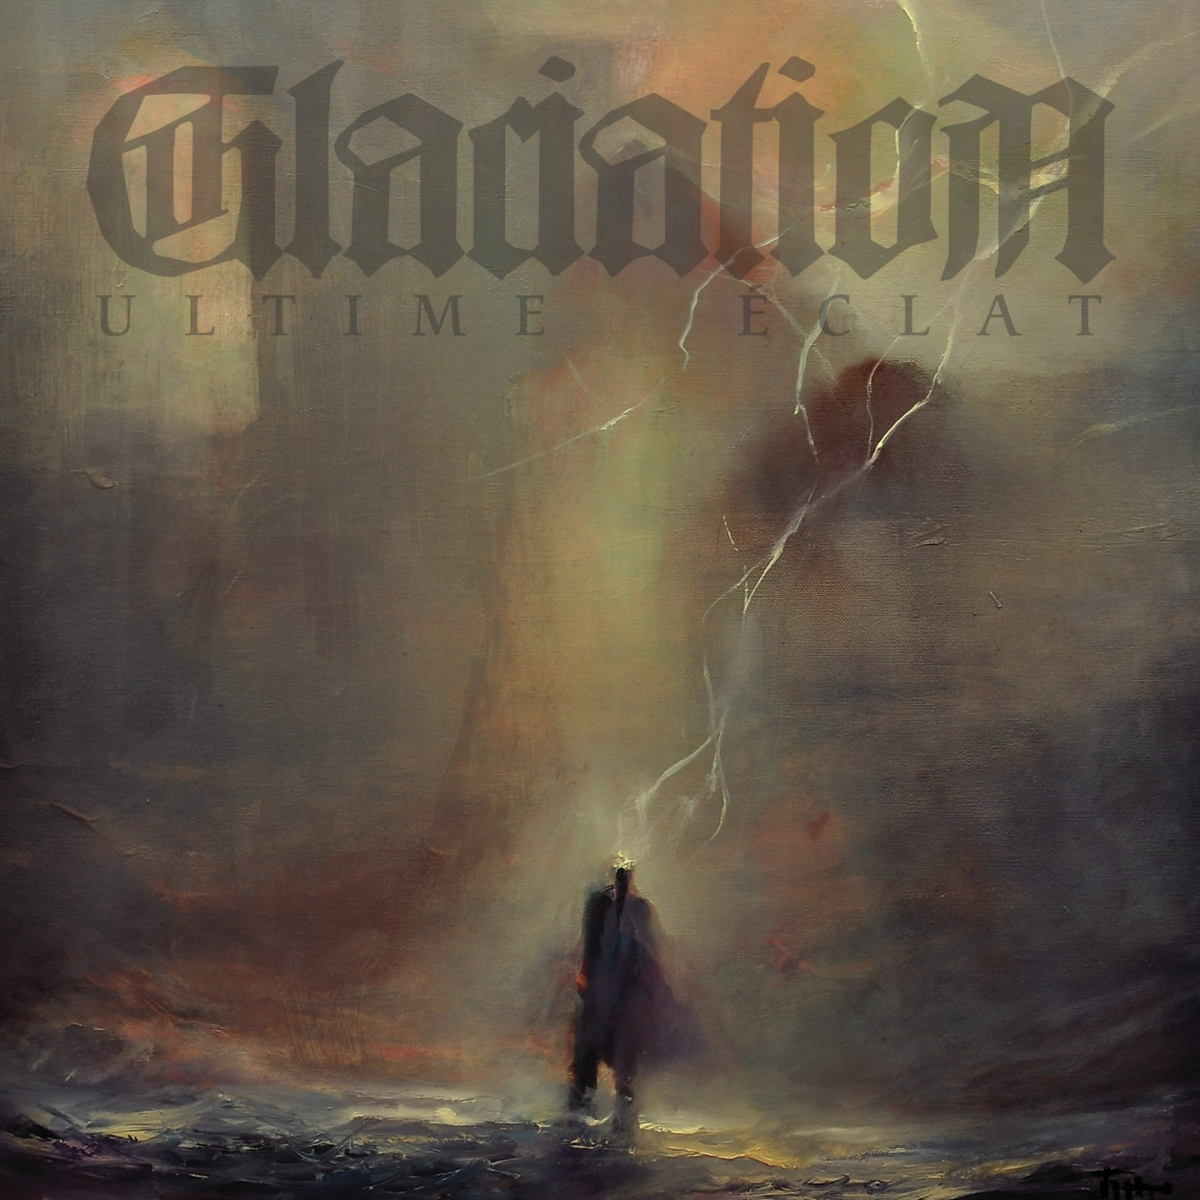 Glaciation⛧Ultime Eclat |review